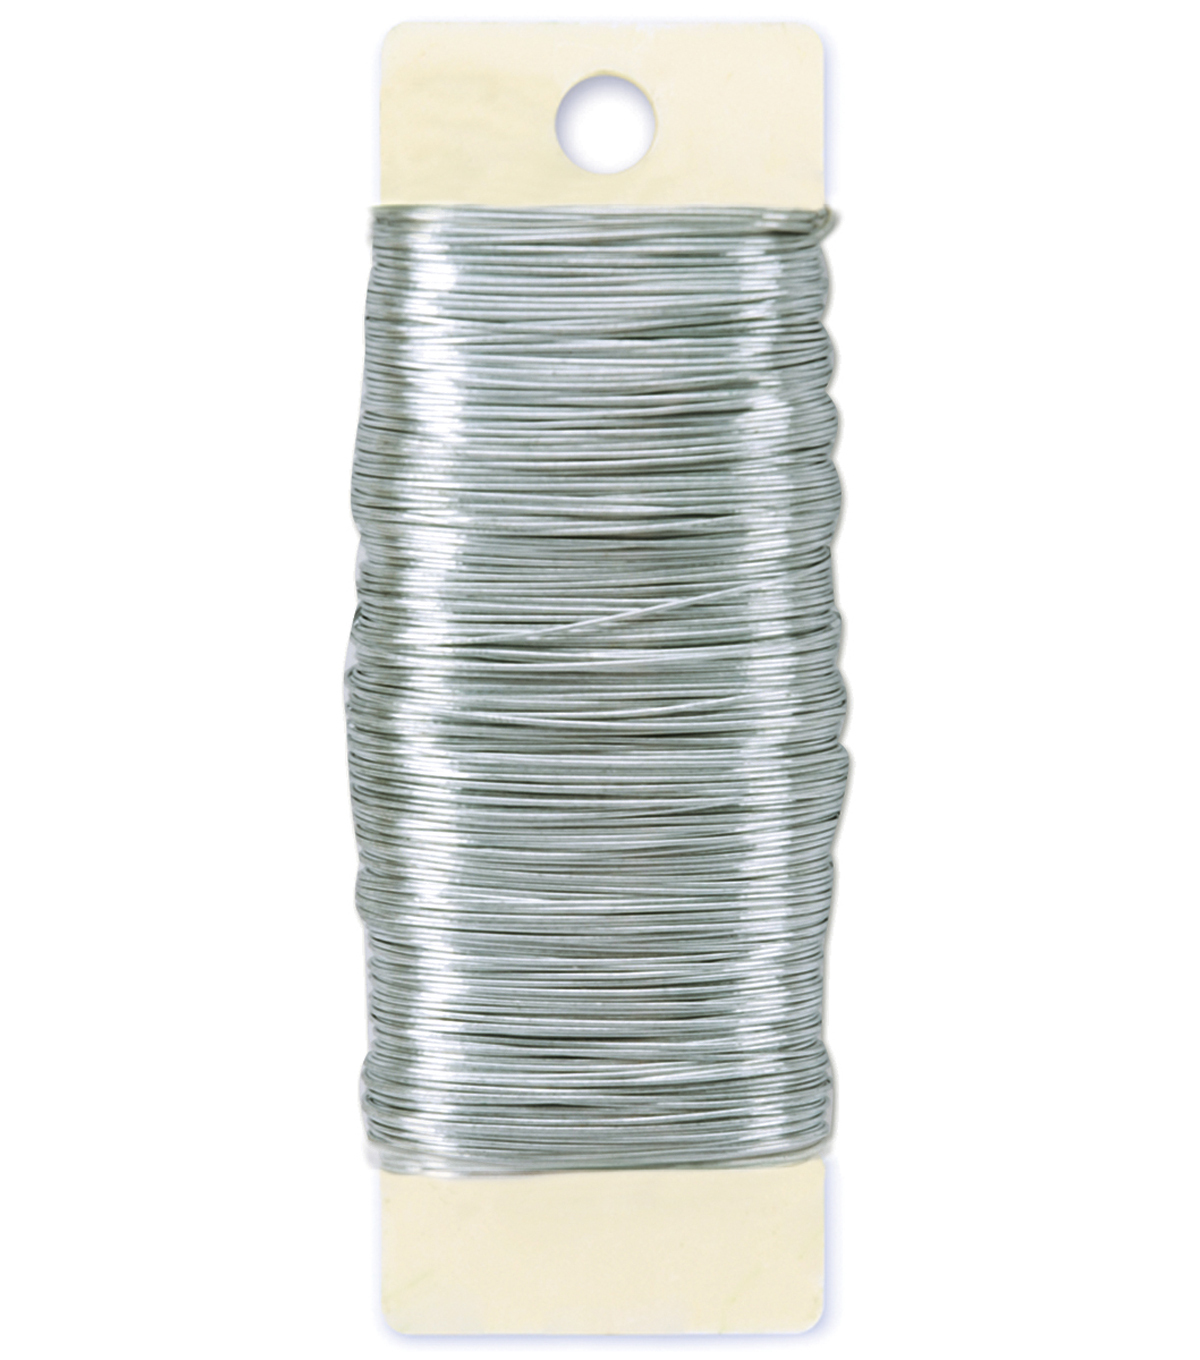 Panacea Products 26 Gauge Bright Paddle Wire-1/4 lbs | JOANN